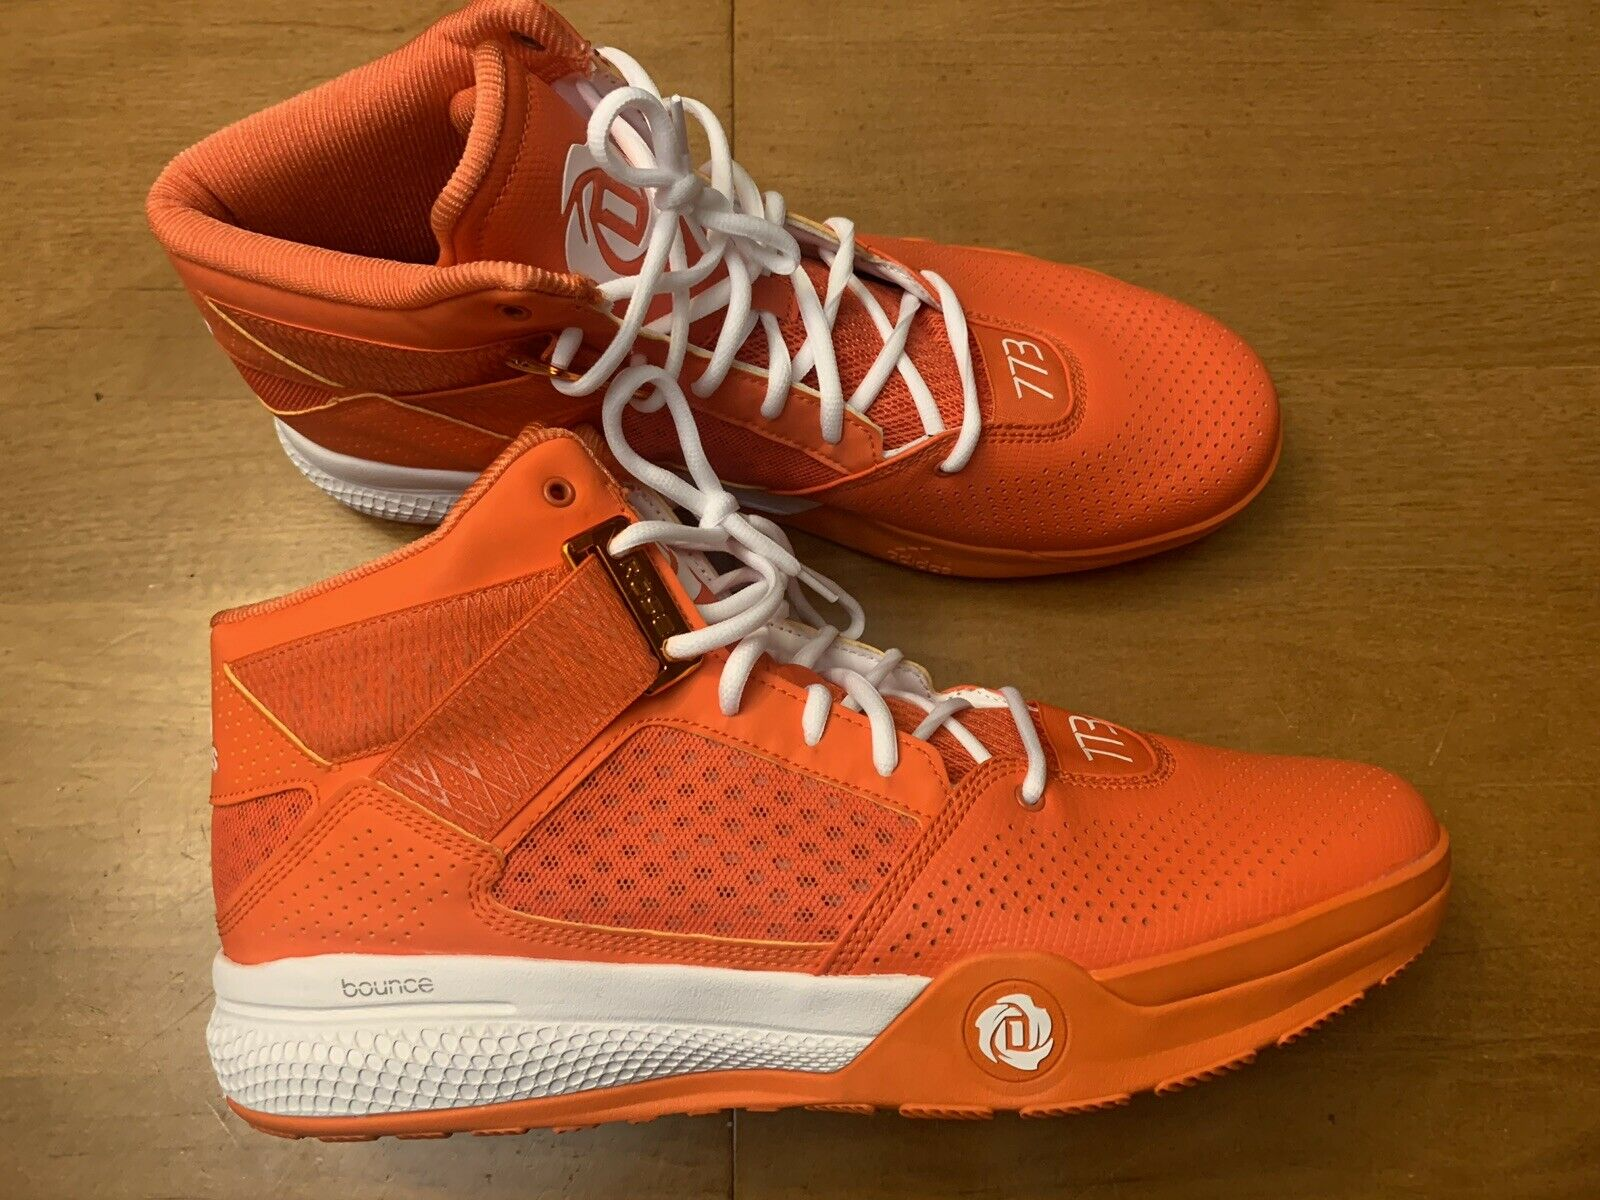 Adidas Bounce Adipink 773 Mens Size 14 Basketball shoes New Without Box